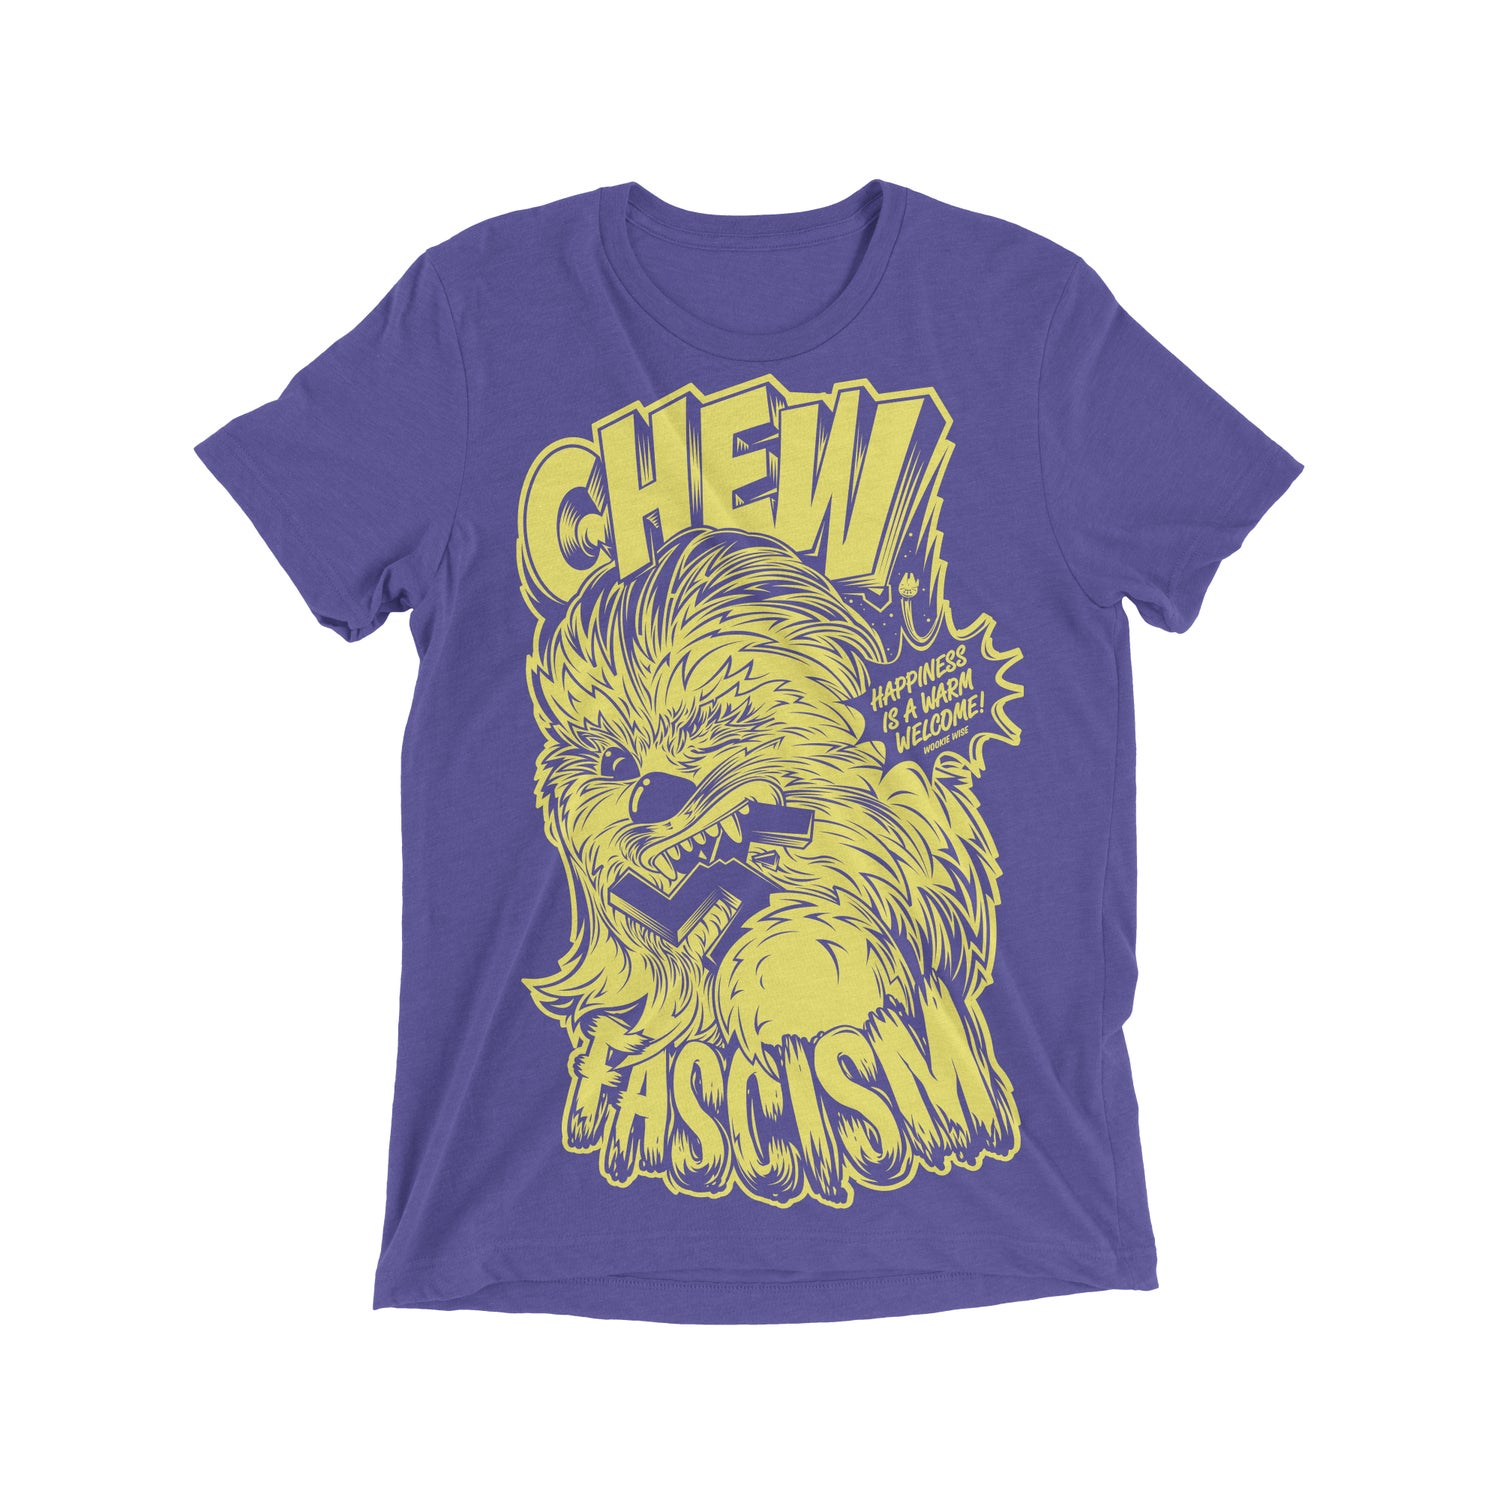 Image of YOUTH CHEW FASCISM / Purple